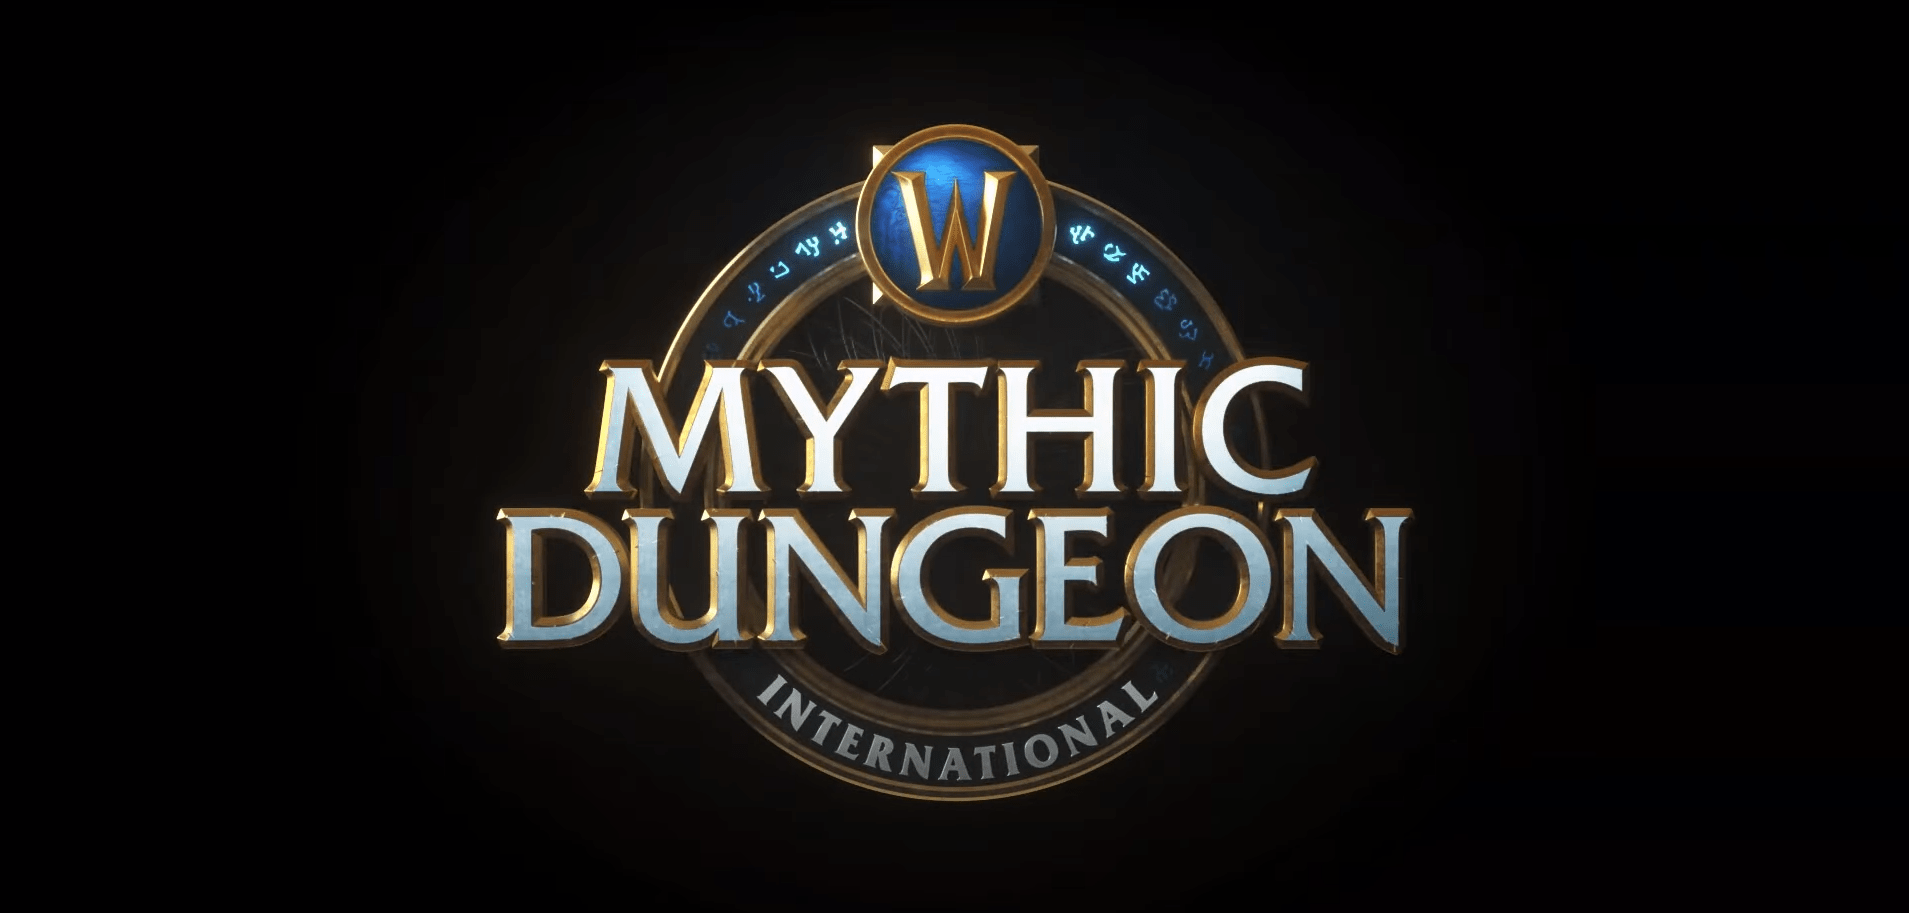 World Of Warcraft's Mythic Dungeon International Third Cup Comes To An End, Deciding The Roster For June's Finals